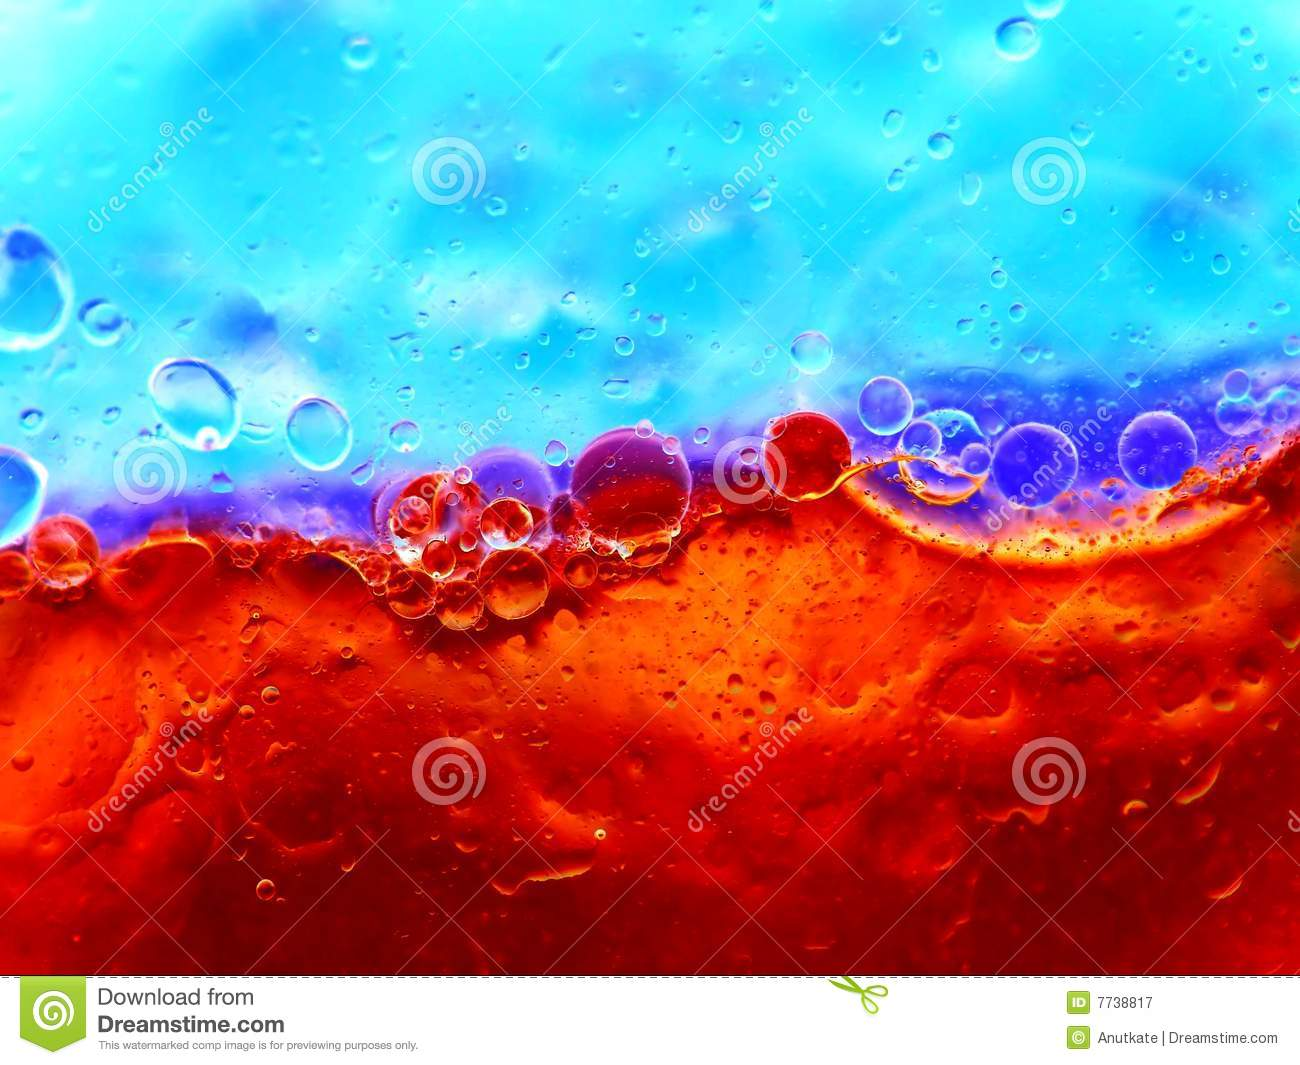 Red and Blue Bubbles - Freelance Christianity